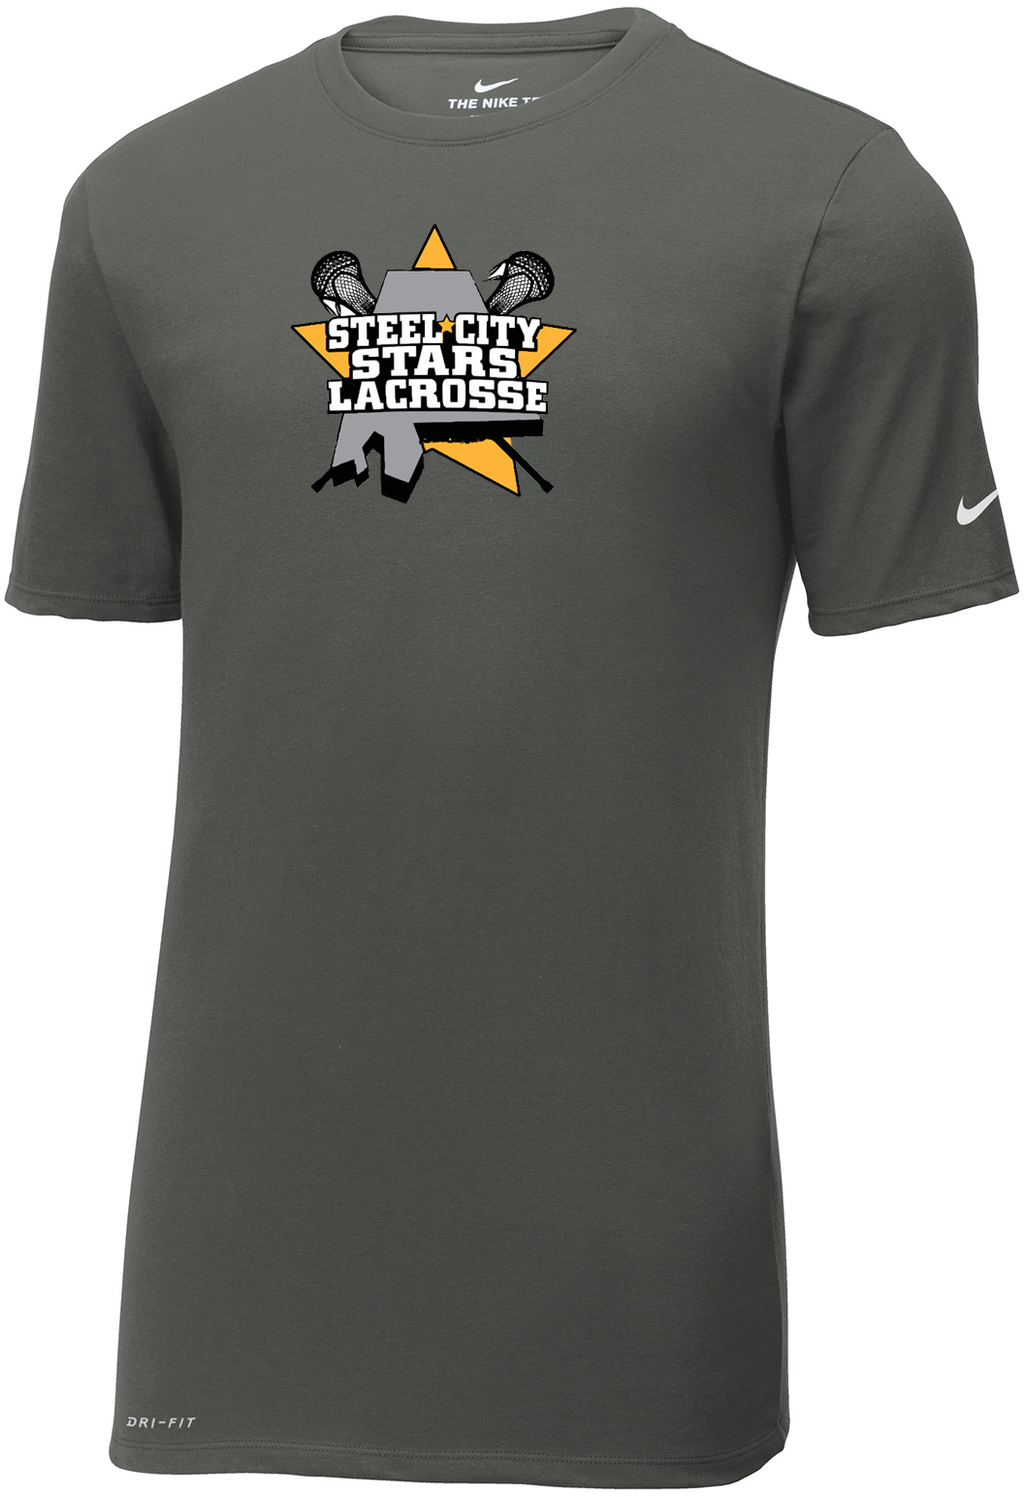 Stars Lacrosse Nike Dri-FIT Shooting Shirt